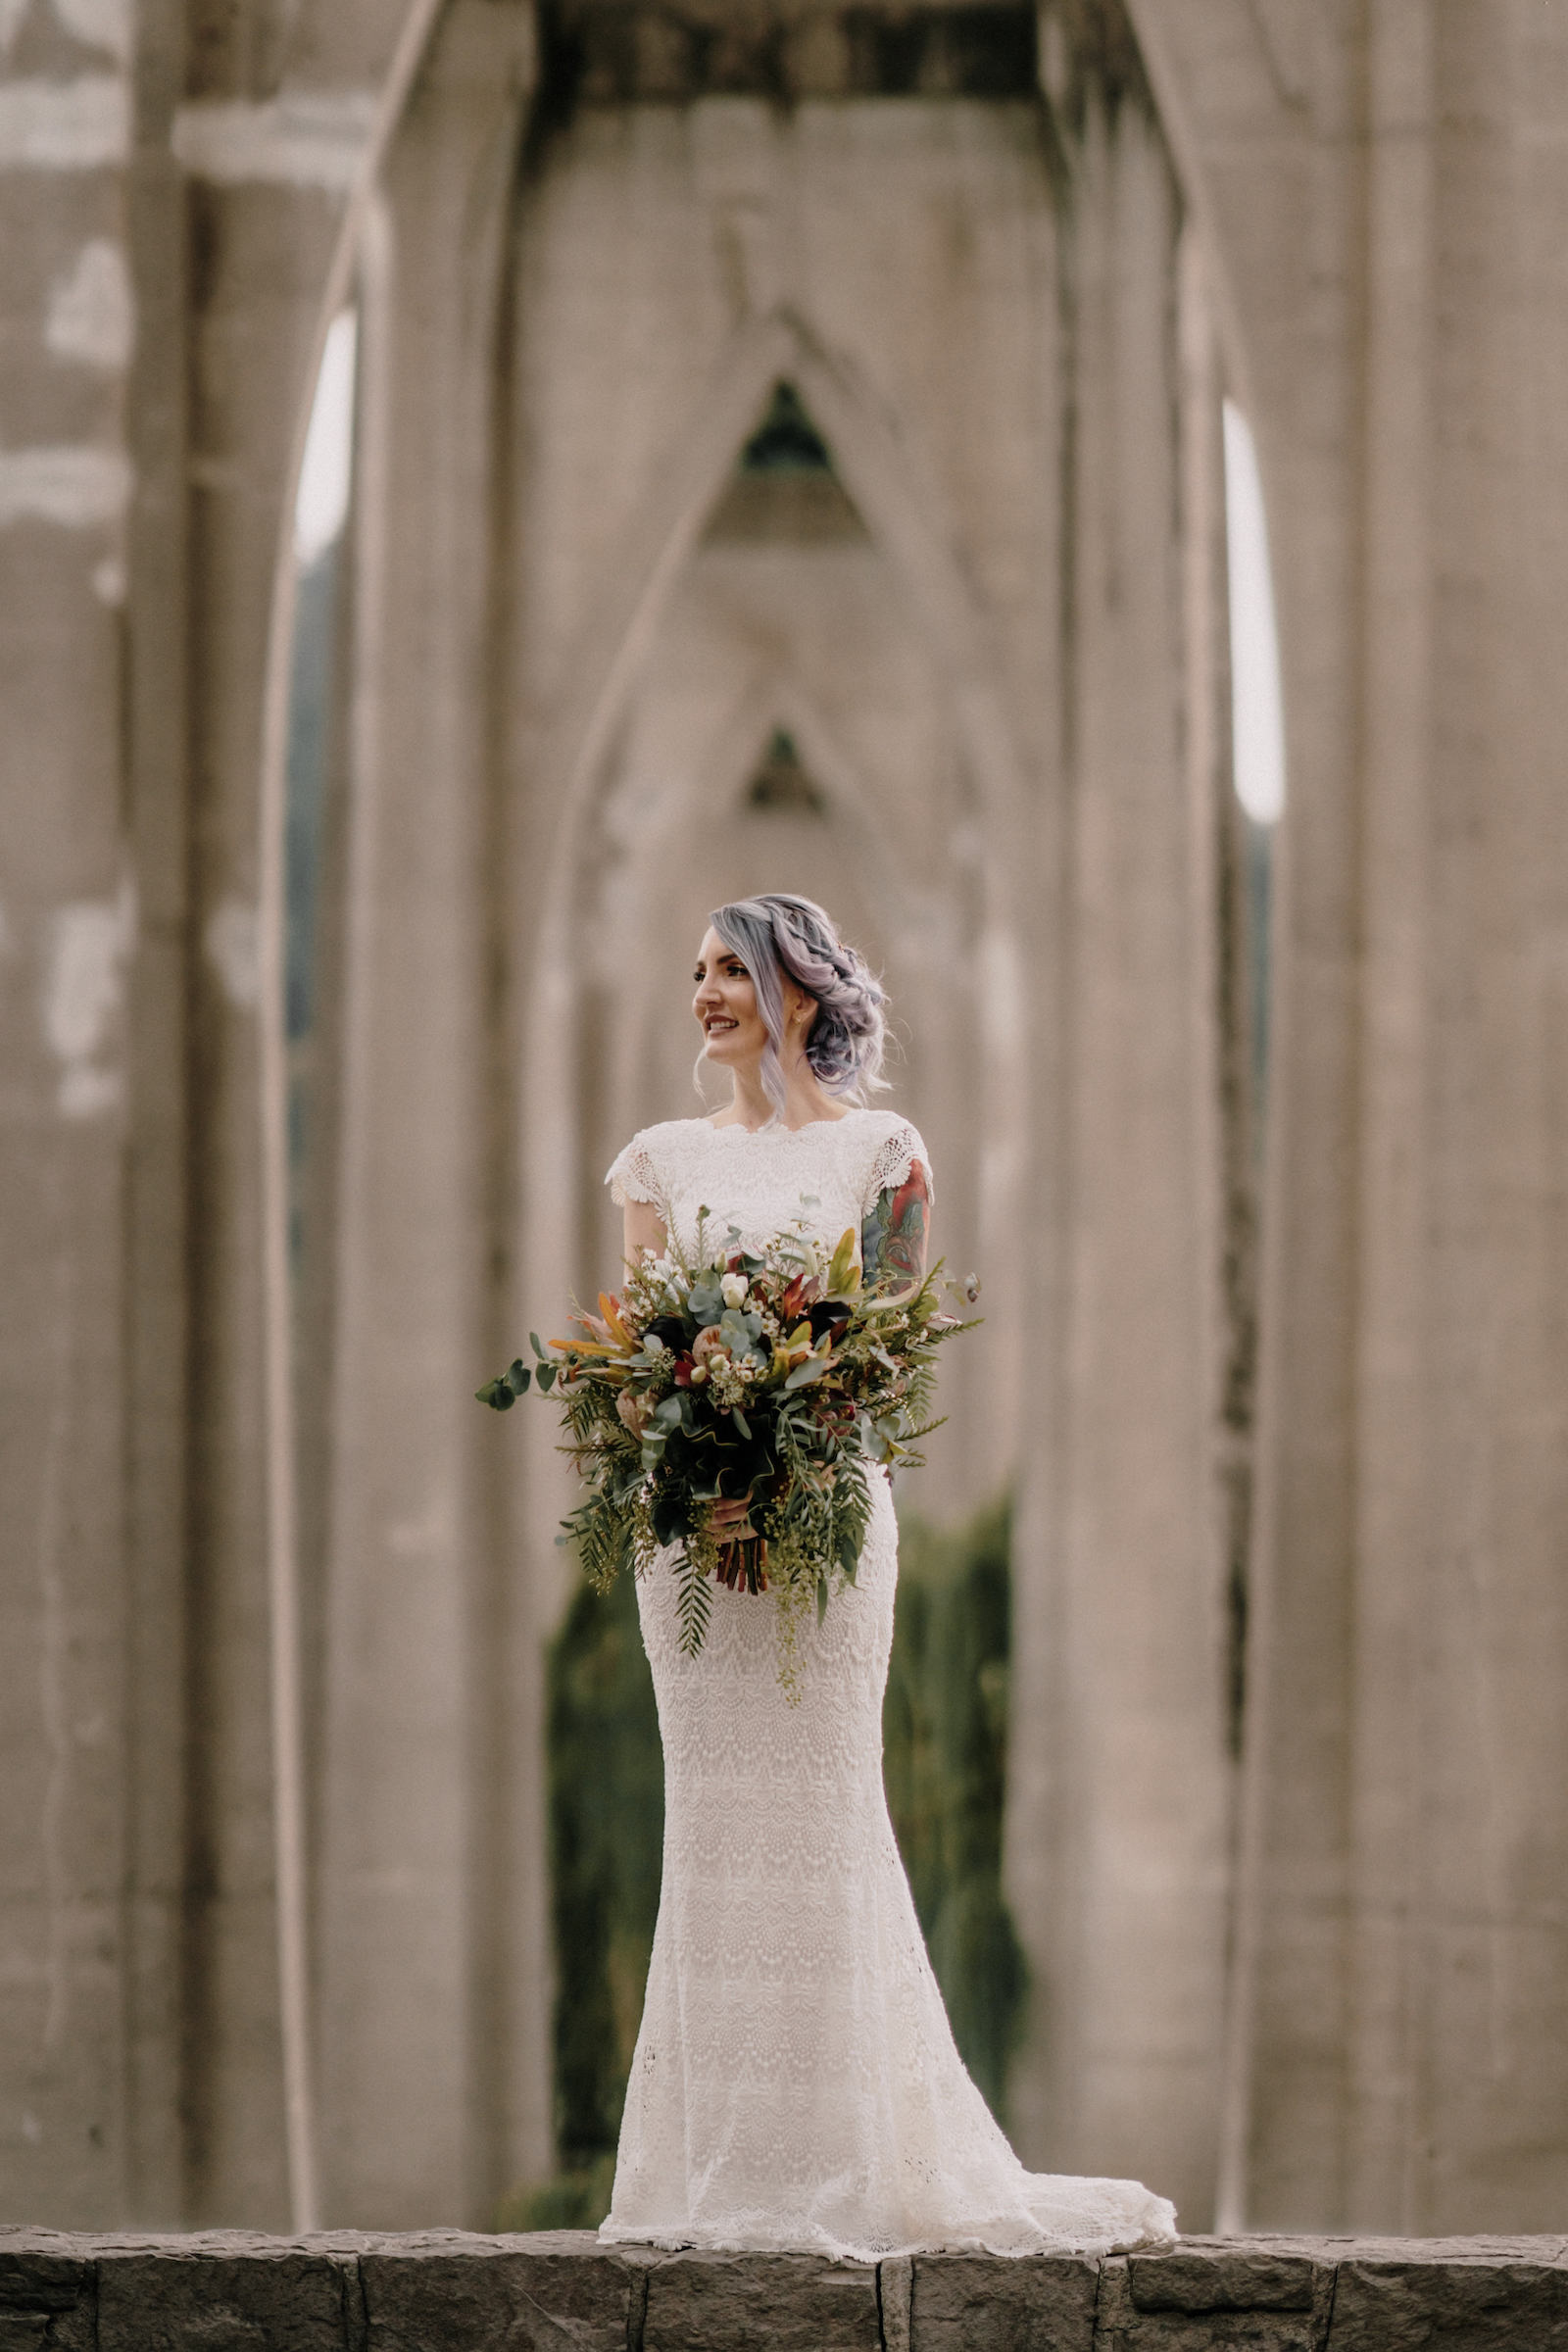 Wedding Floral Design in Portland